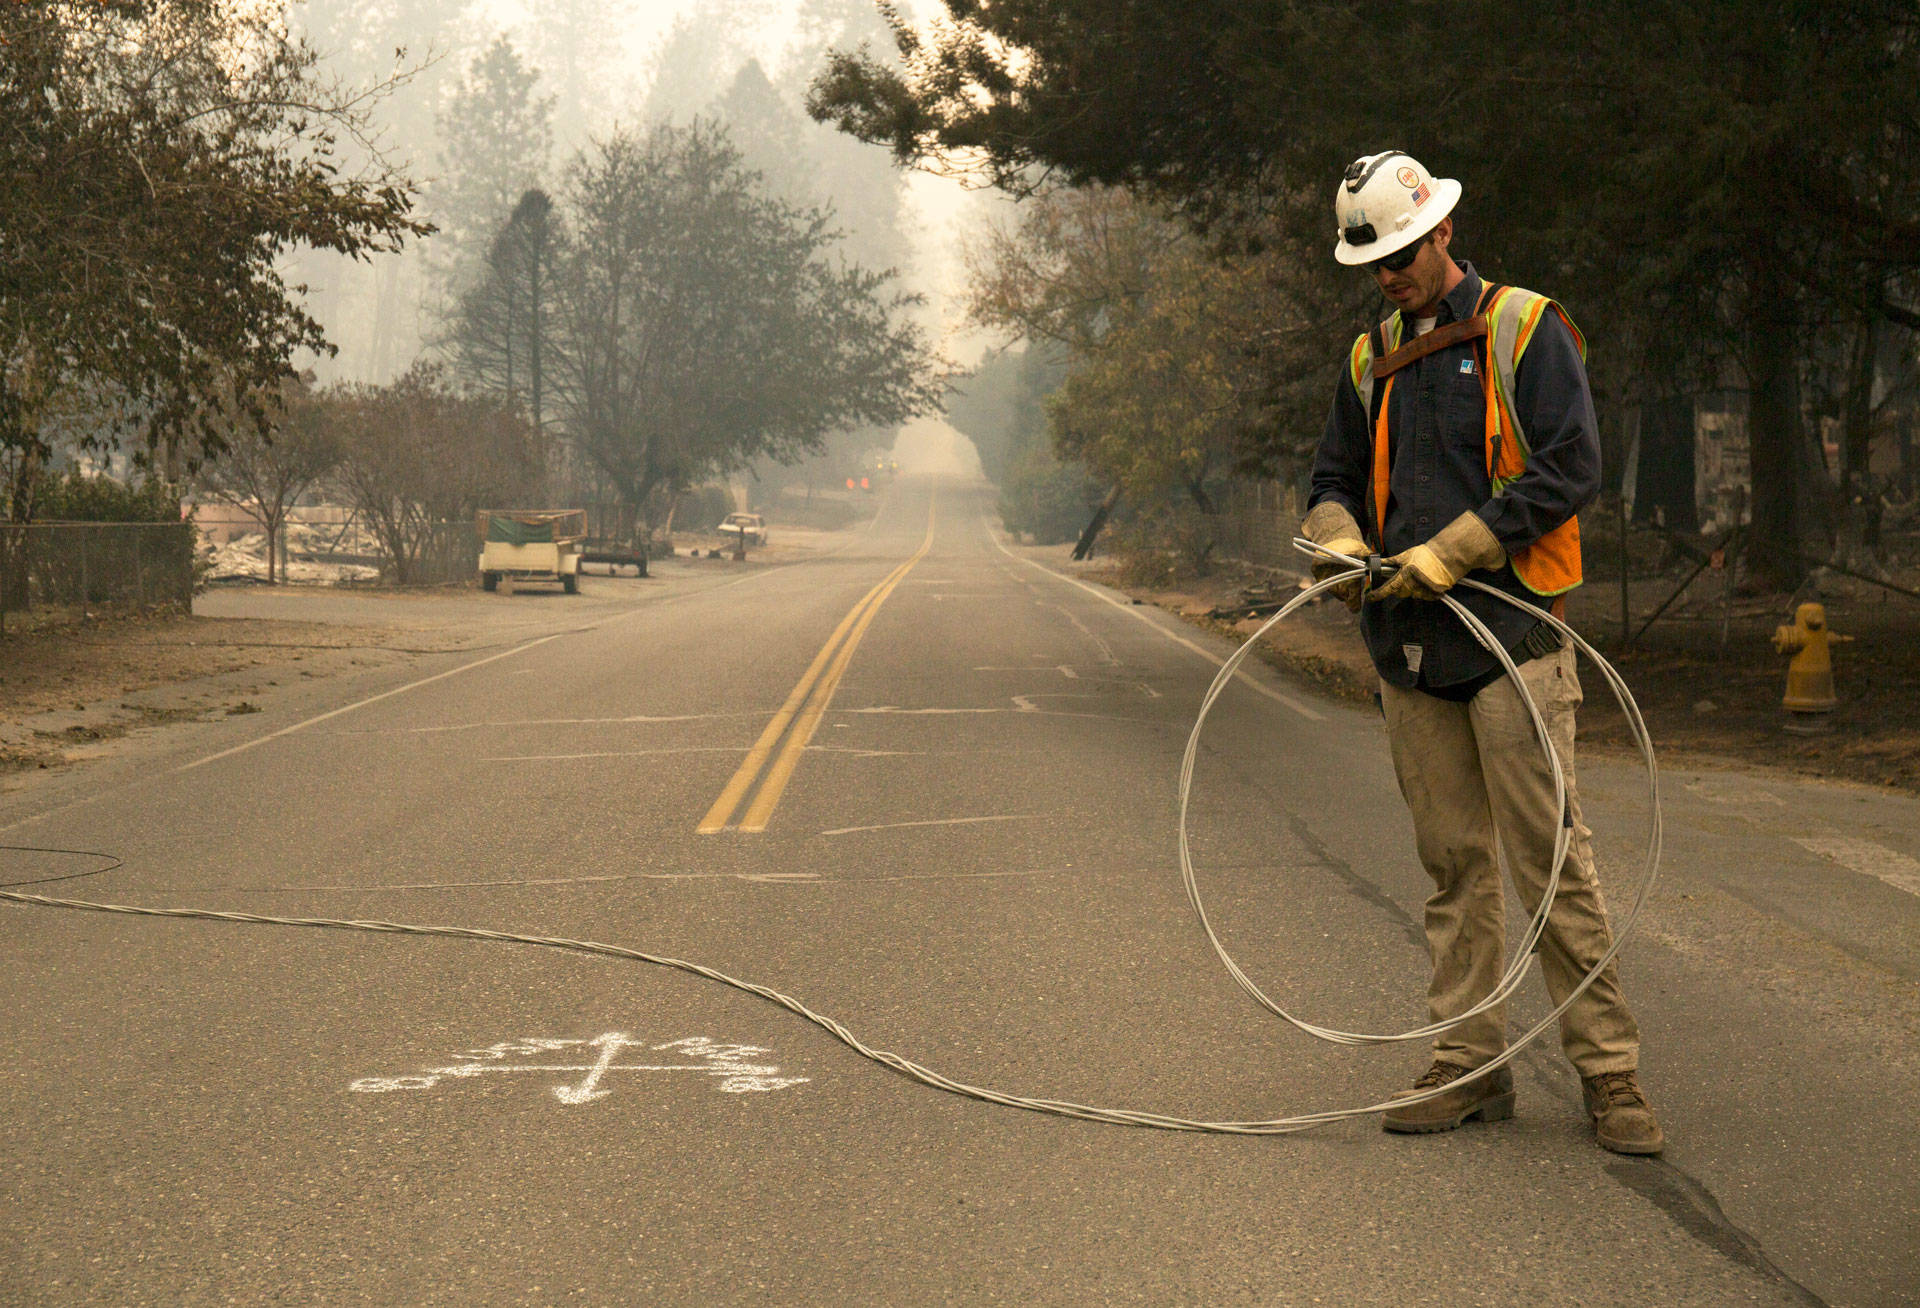 A PG&E worker clears fallen power cables from the road on Nov. 13, 2018, in Paradise, after the town was decimated by the Camp Fire. Anne Wernikoff/KQED